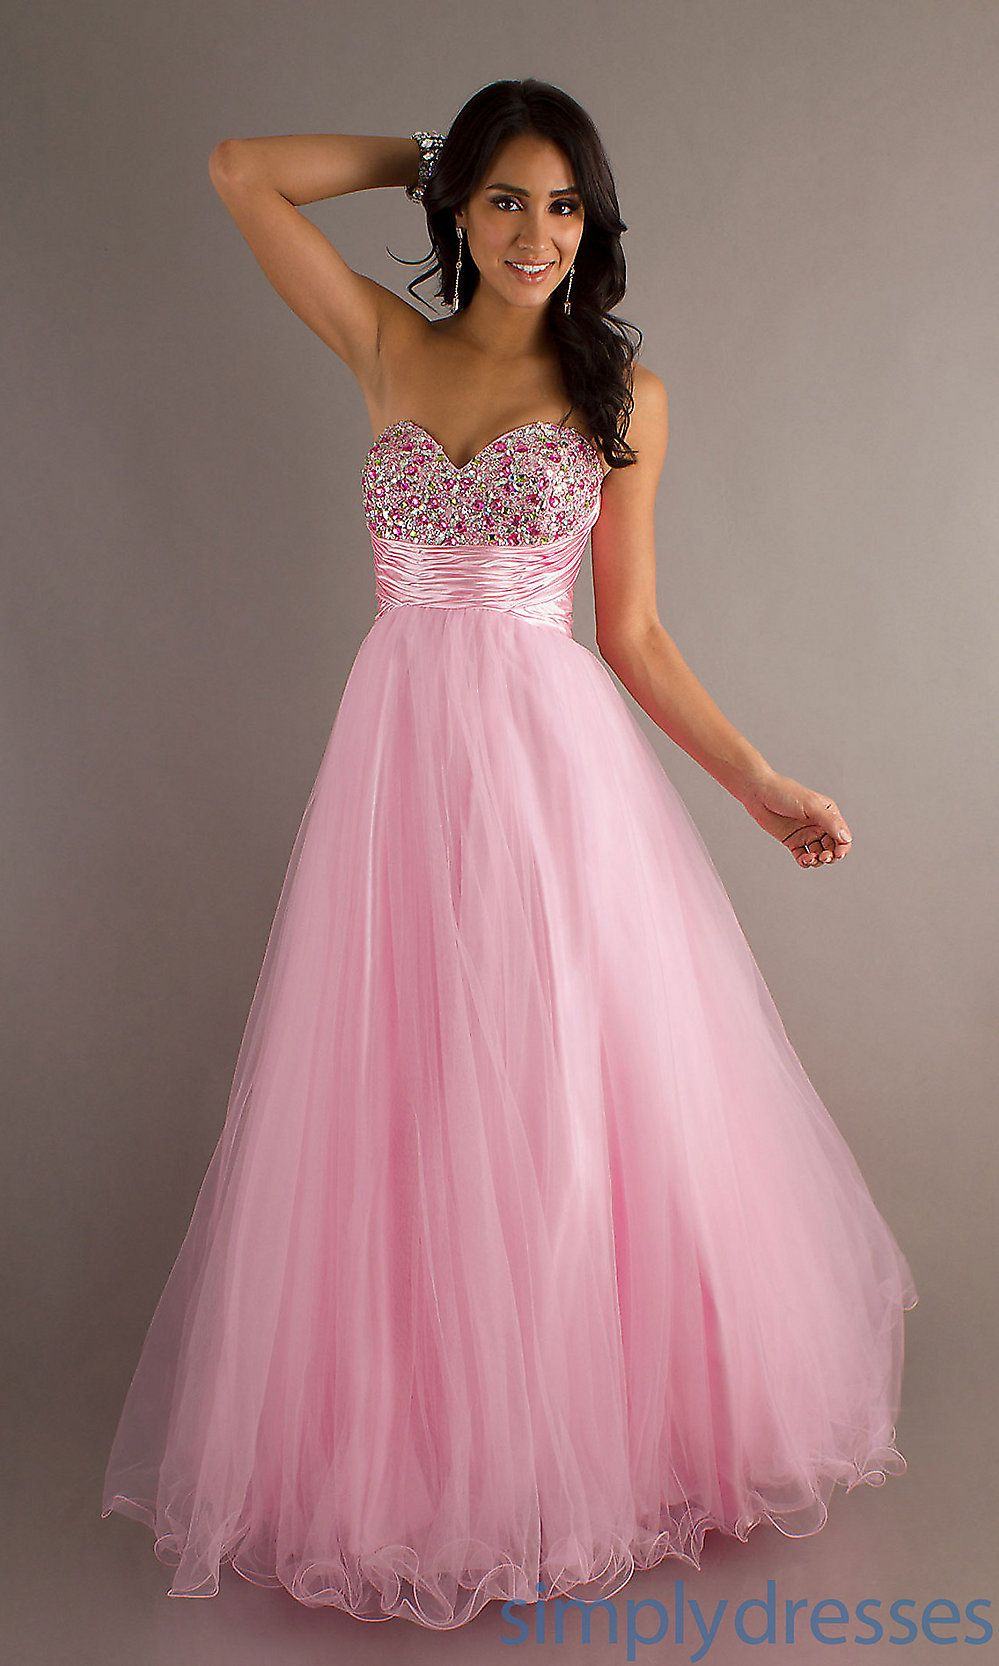 Long Tulle Sweetheart Prom Dress, Pink Ball Gown - Simply Dresses ...